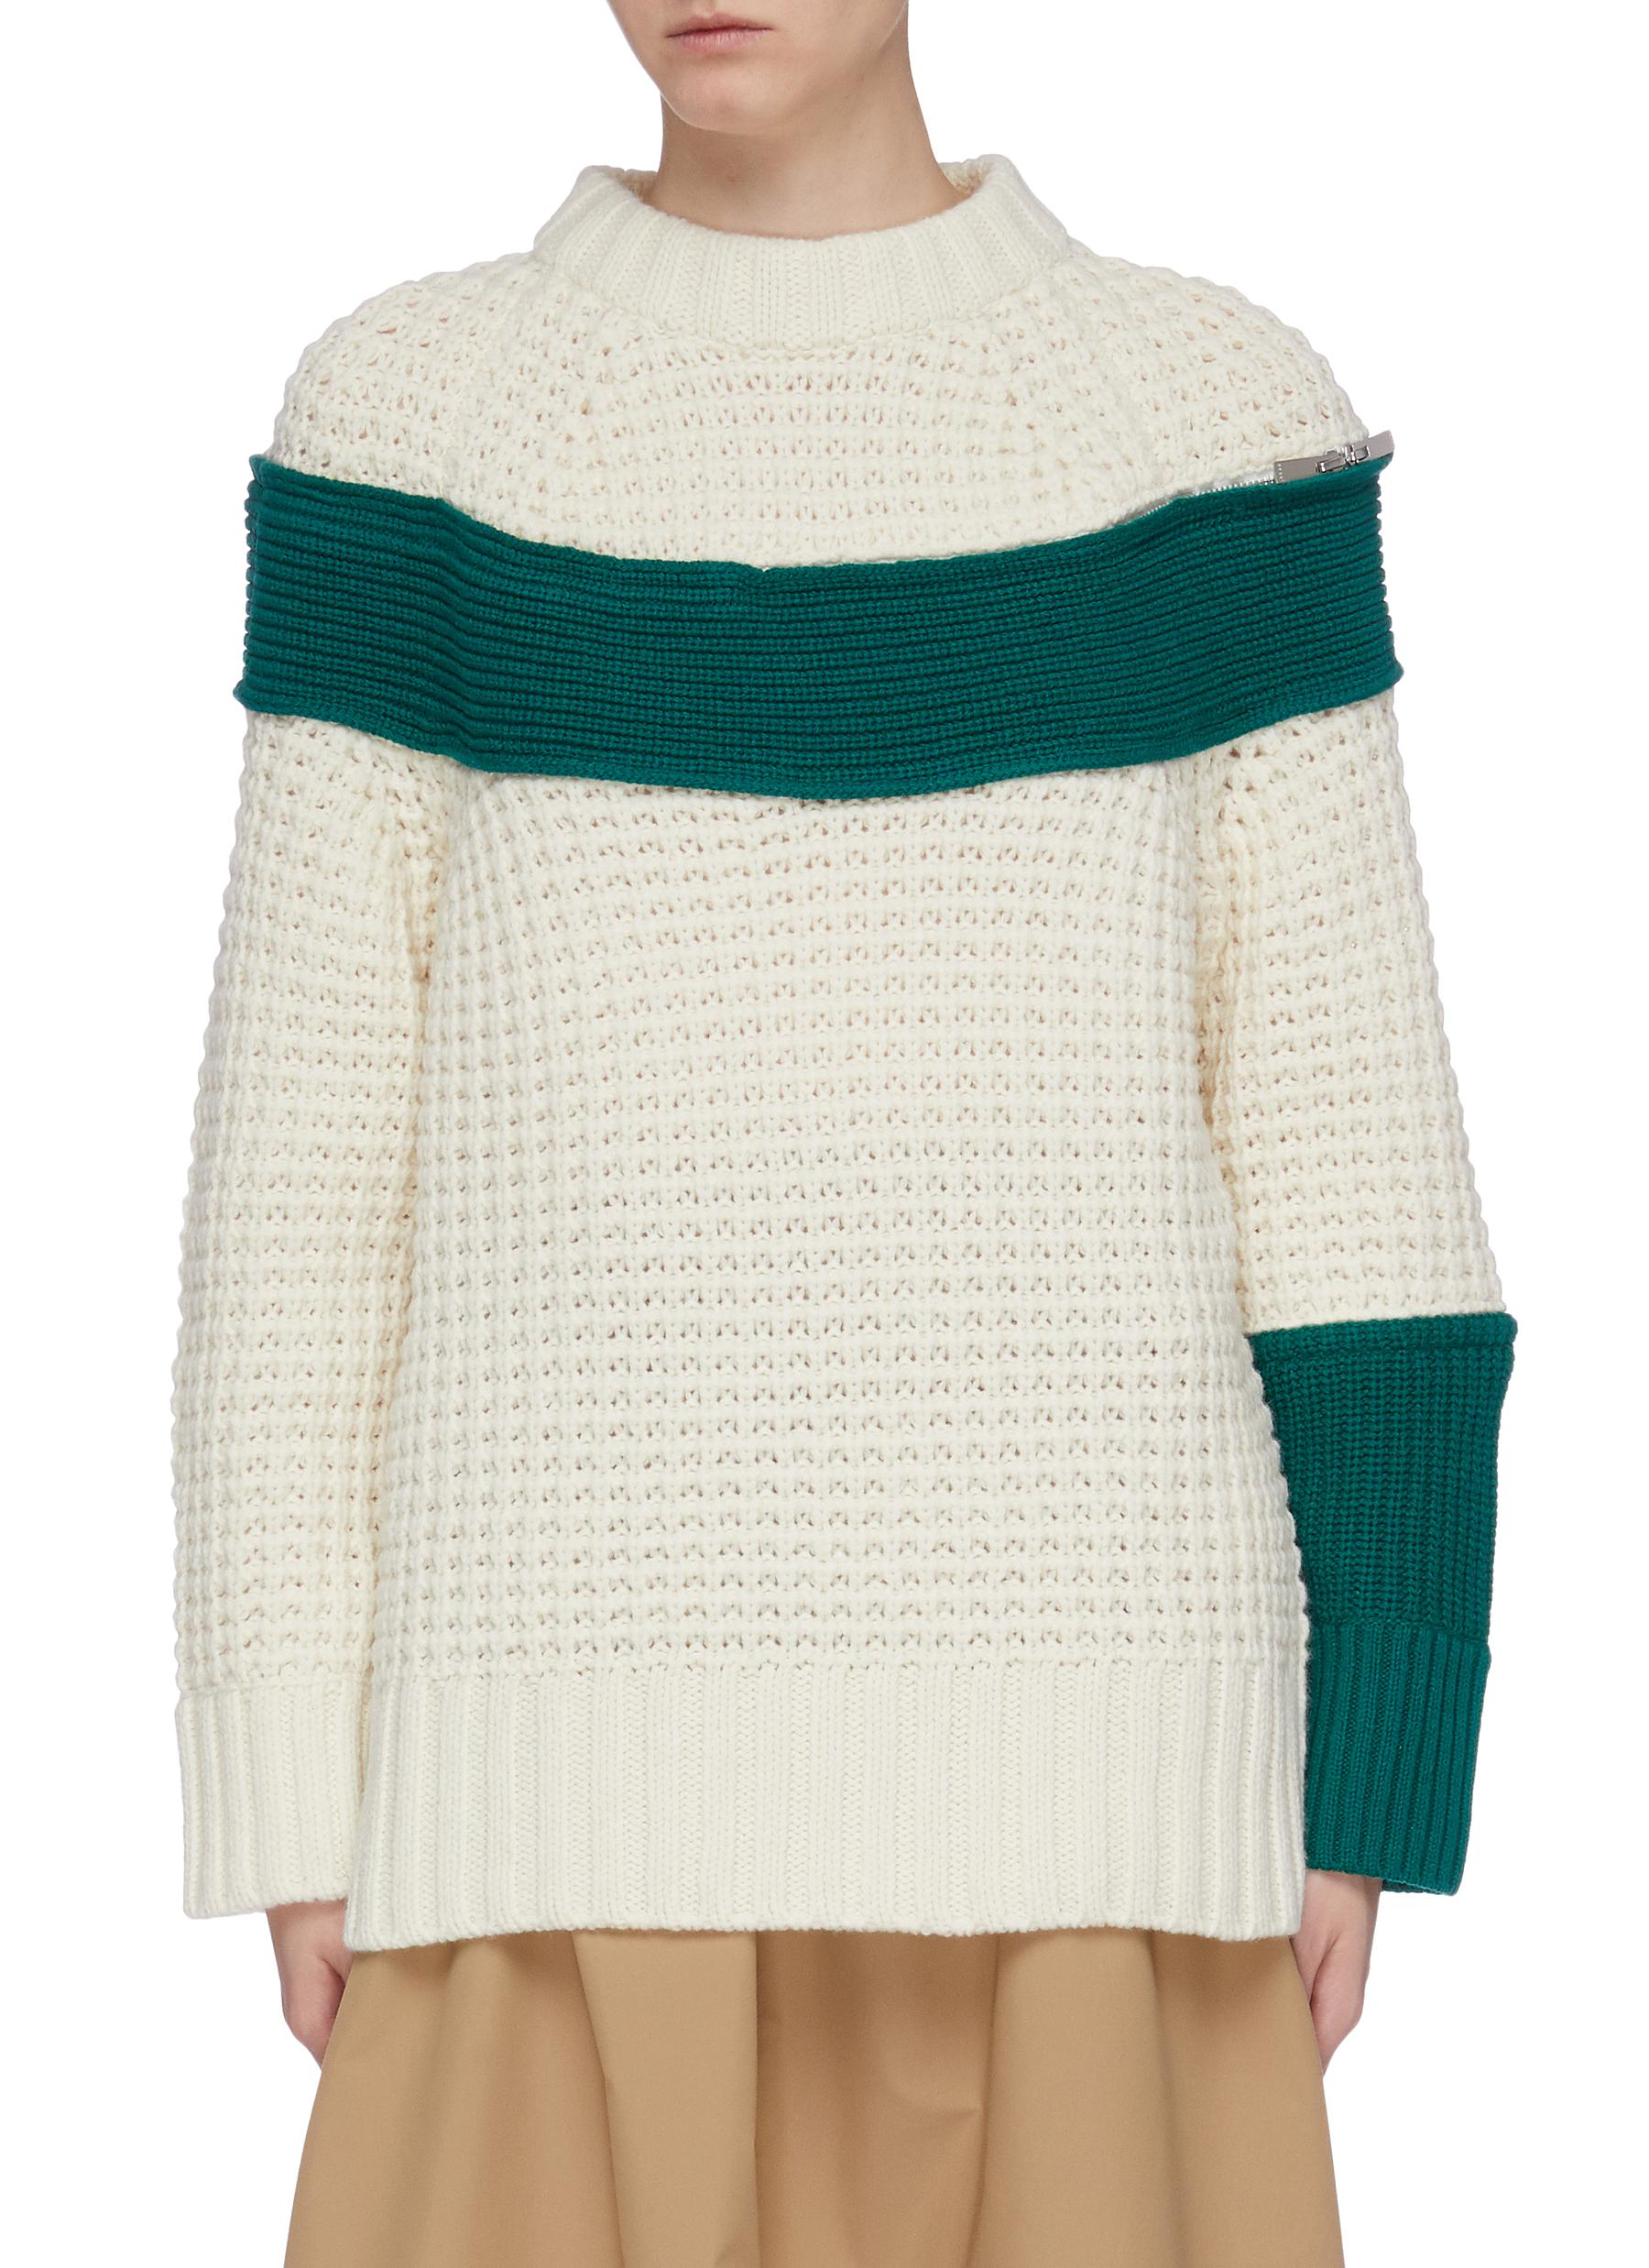 Colourblock zip panel mix knit sweater by Sacai